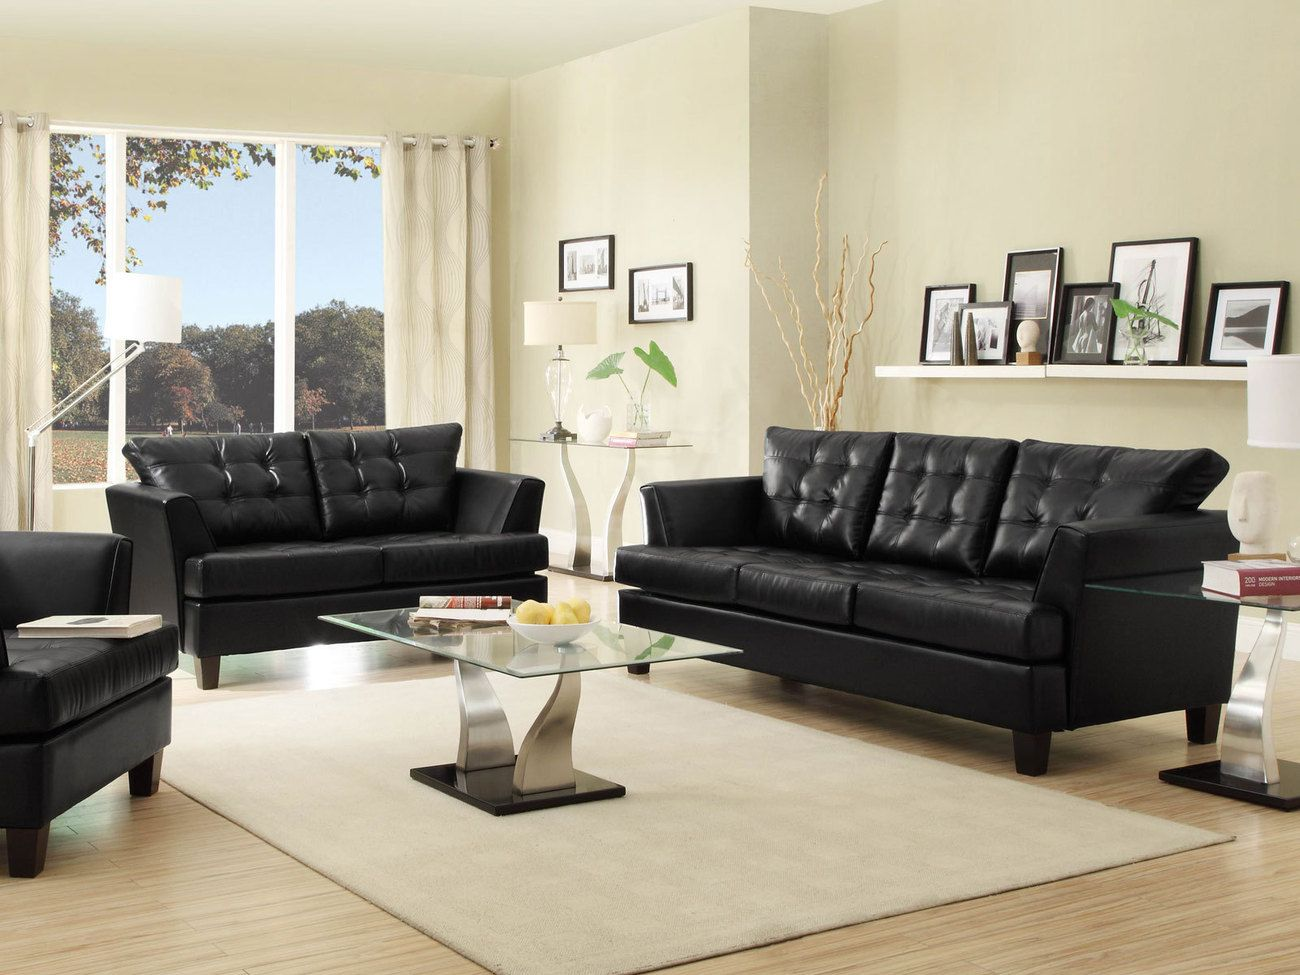 IRIS   MODERN BLACK FAUX LEATHER SOFA COUCH U0026 LOVESEAT SET LIVING ROOM  FURNITURE $1300